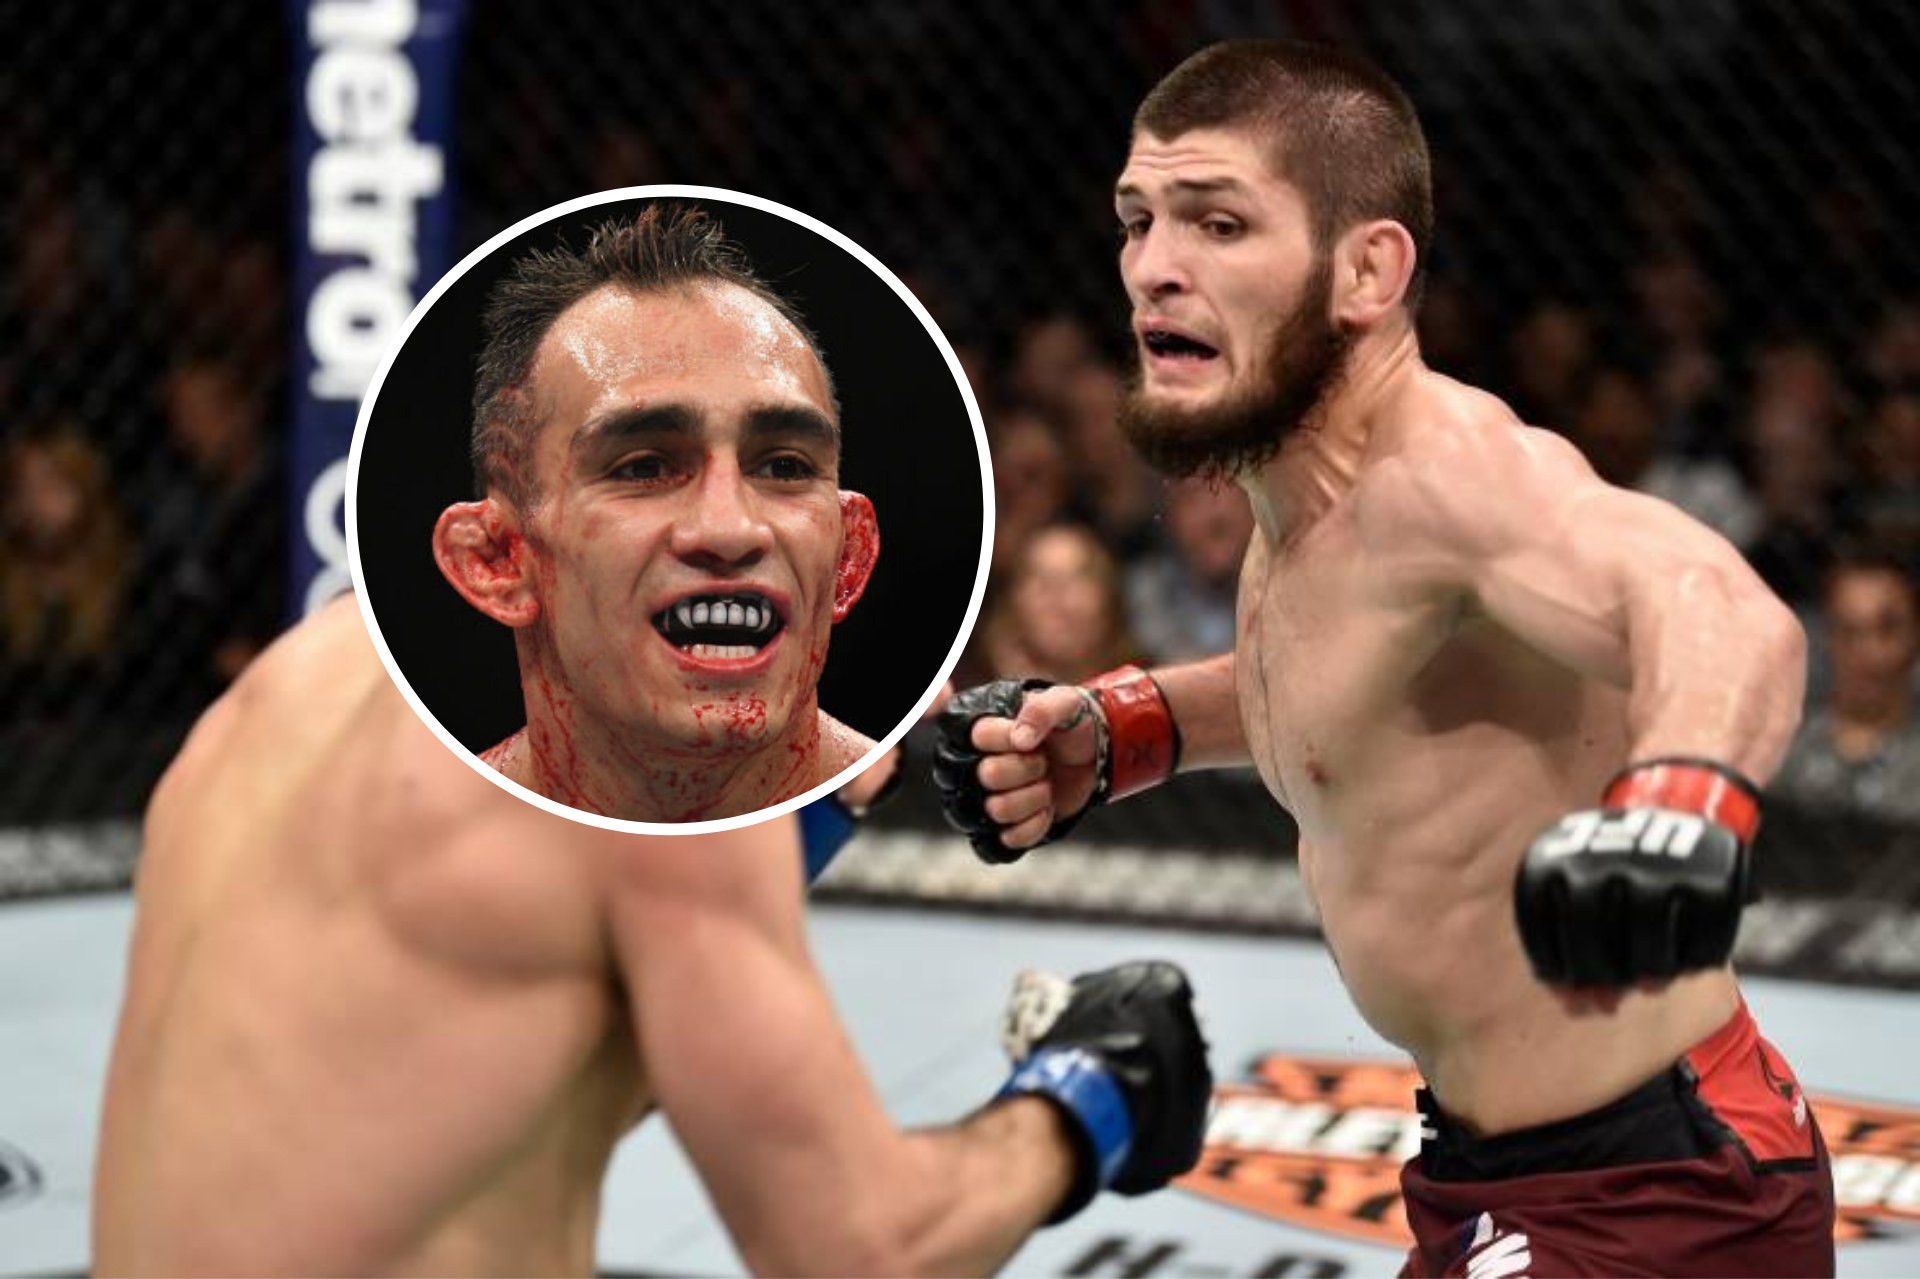 UFC News: Khabib outlines why the Tony Ferguson fight is the biggest in history - Khabib